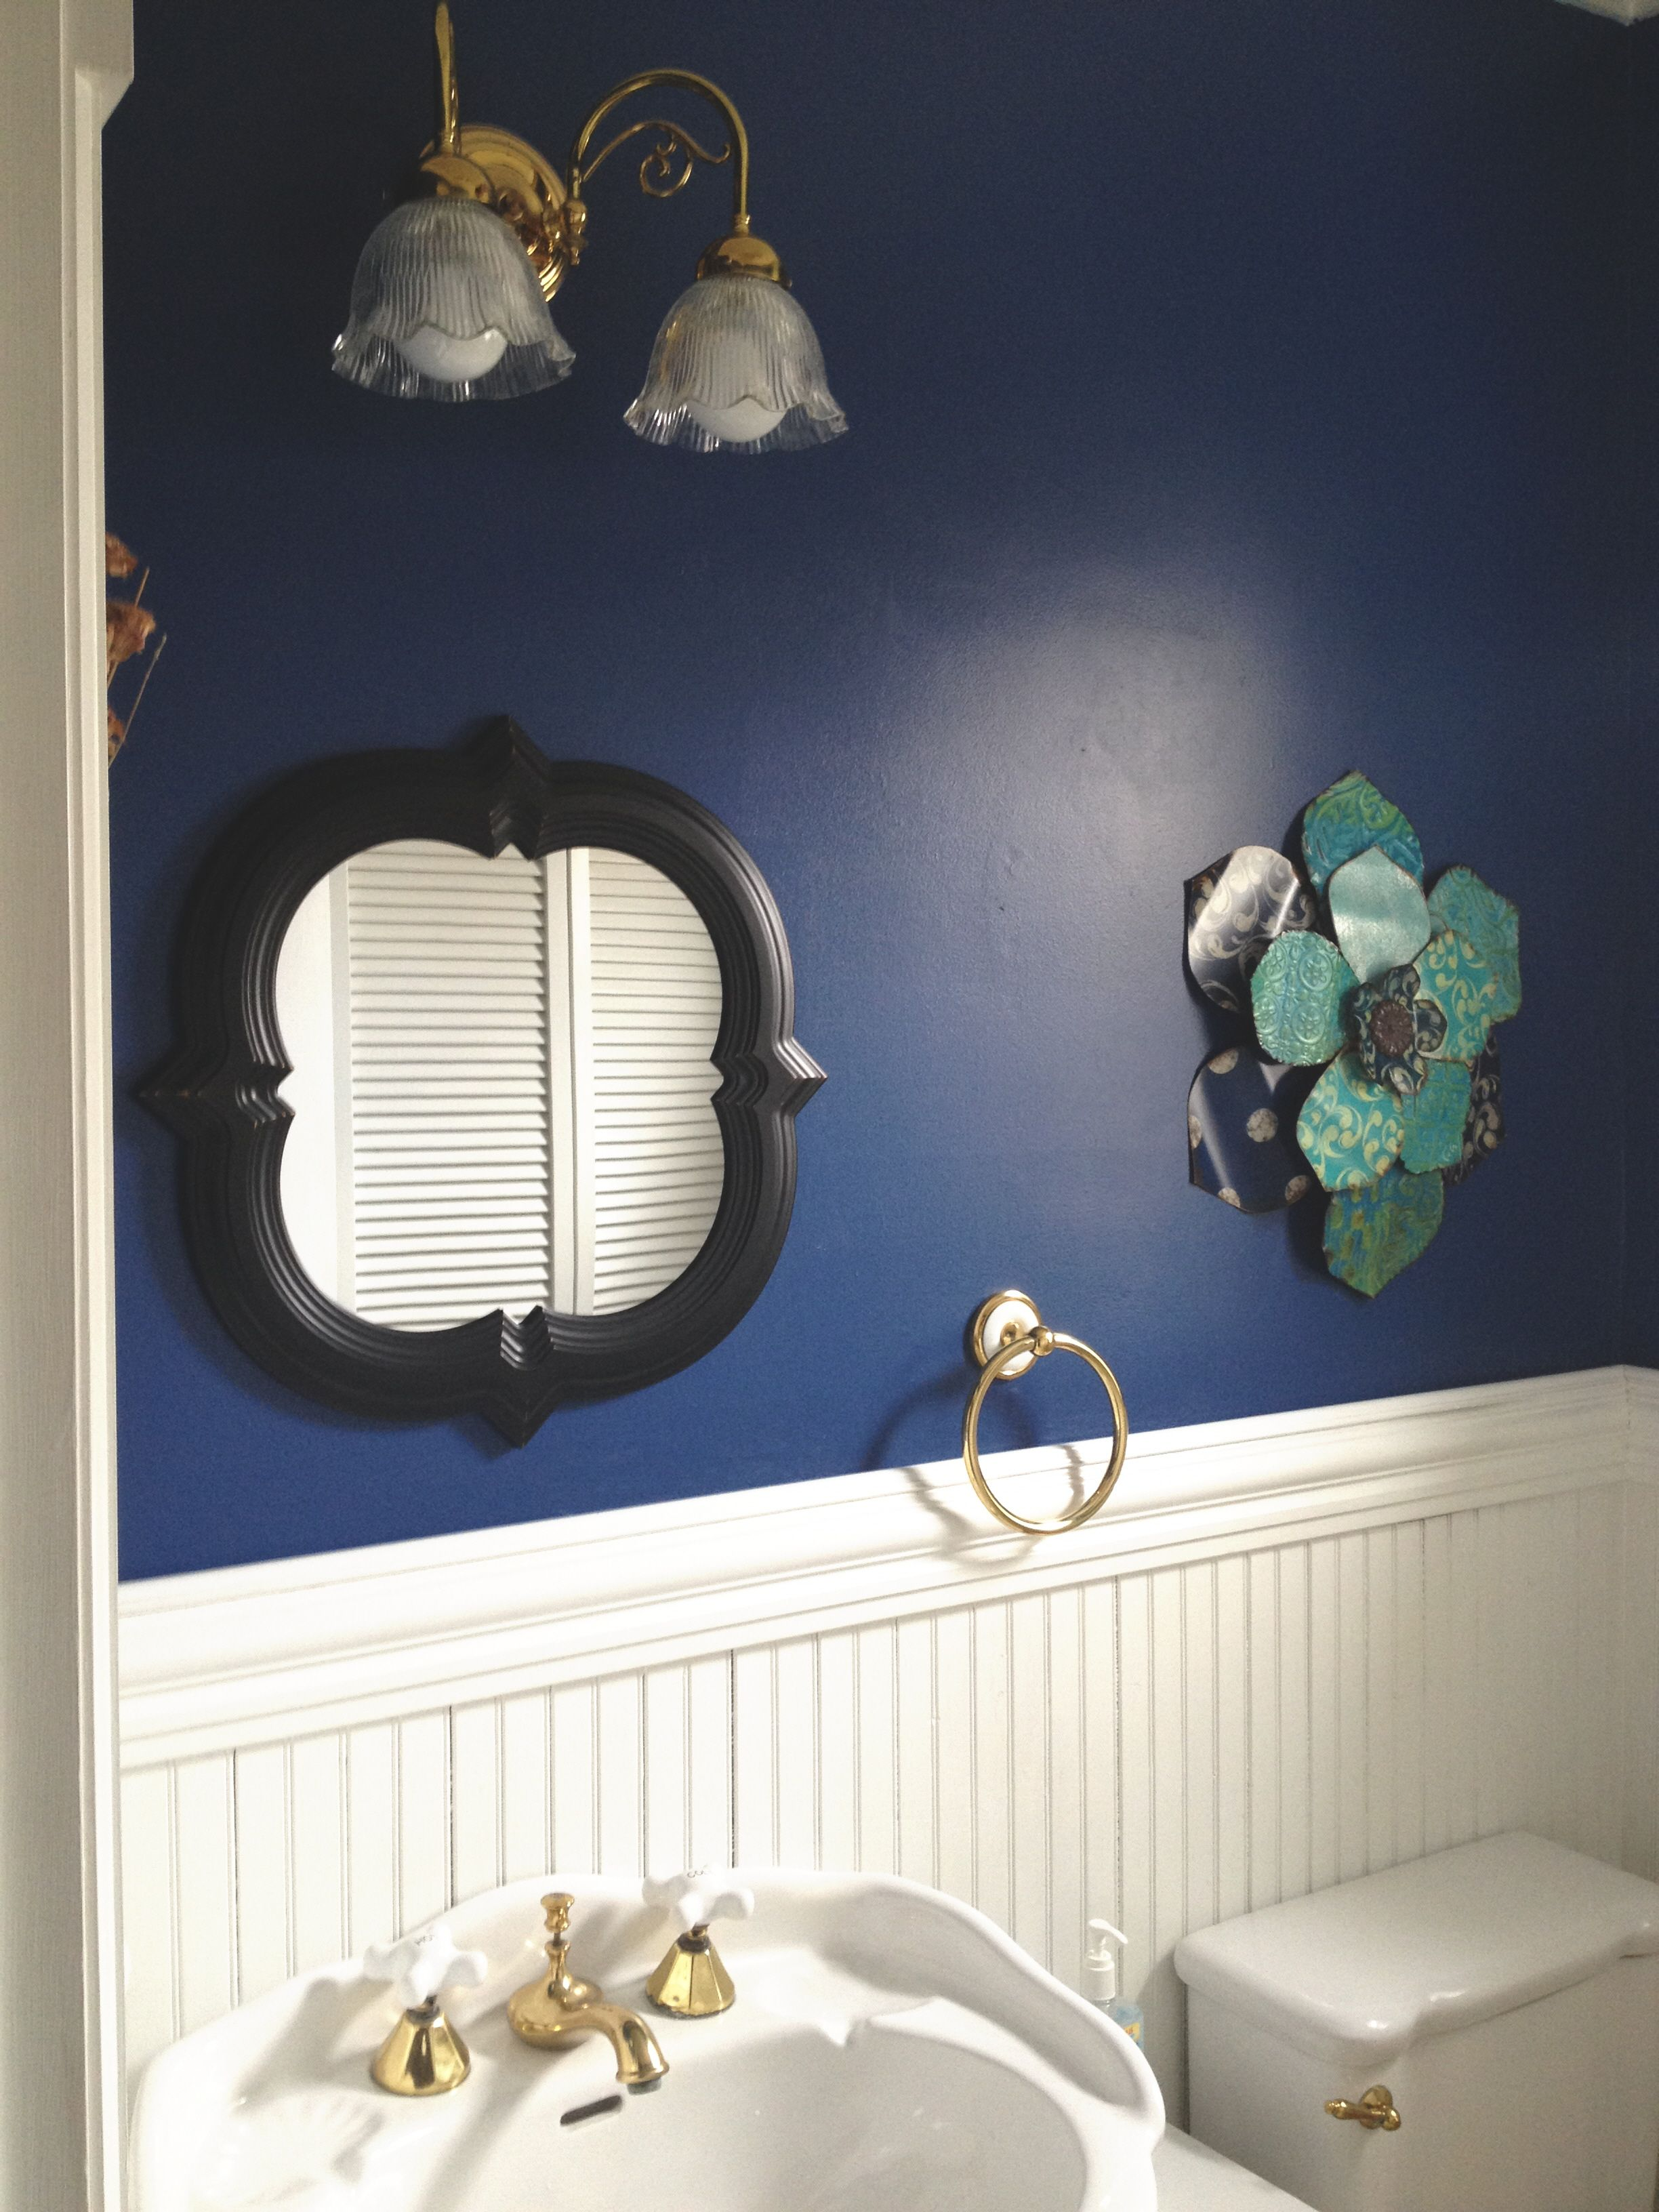 Wainscoting in Bathroom | Wainscoting in Small Bathroom ...